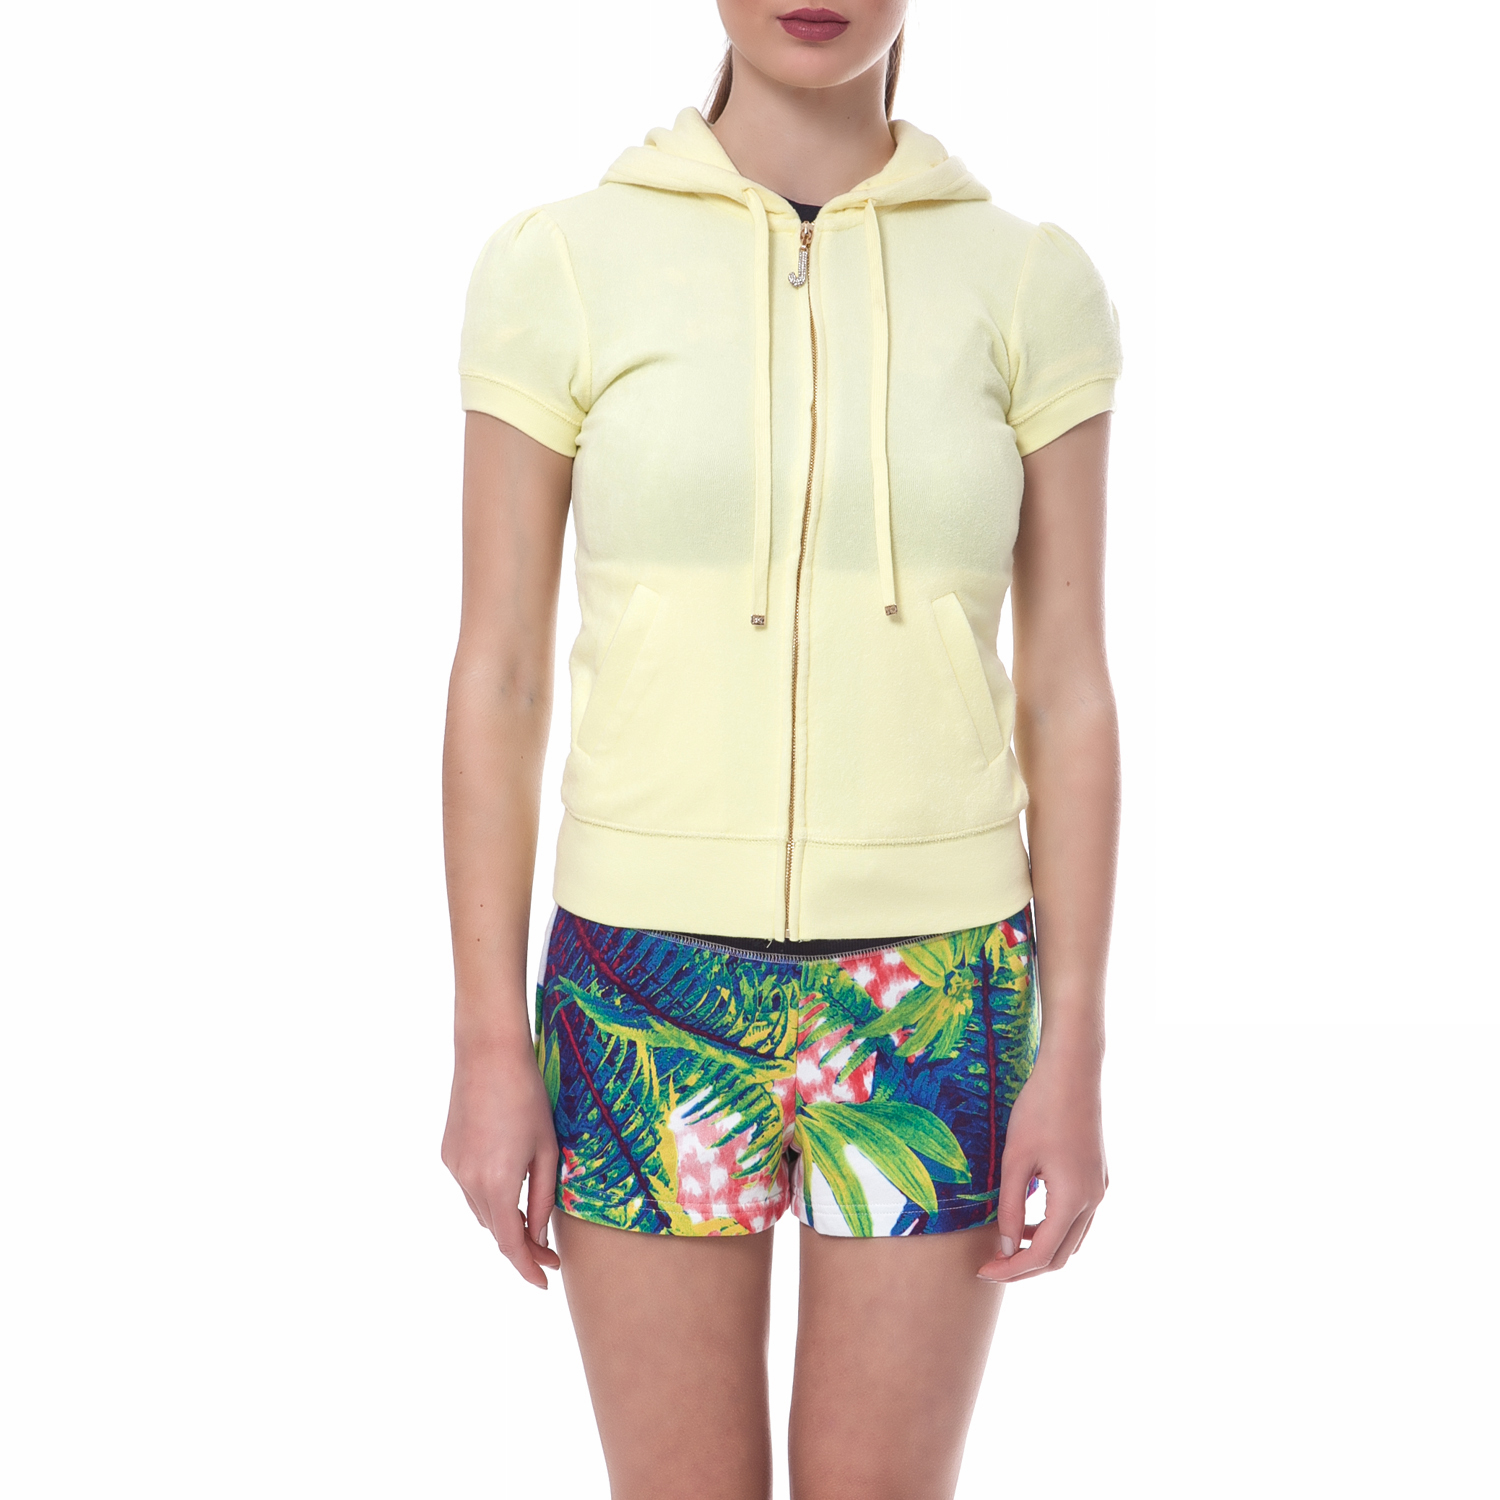 ab37f6b3a684 JUICY COUTURE - Γυναικεία ζακέτα Juicy Couture κίτρινη